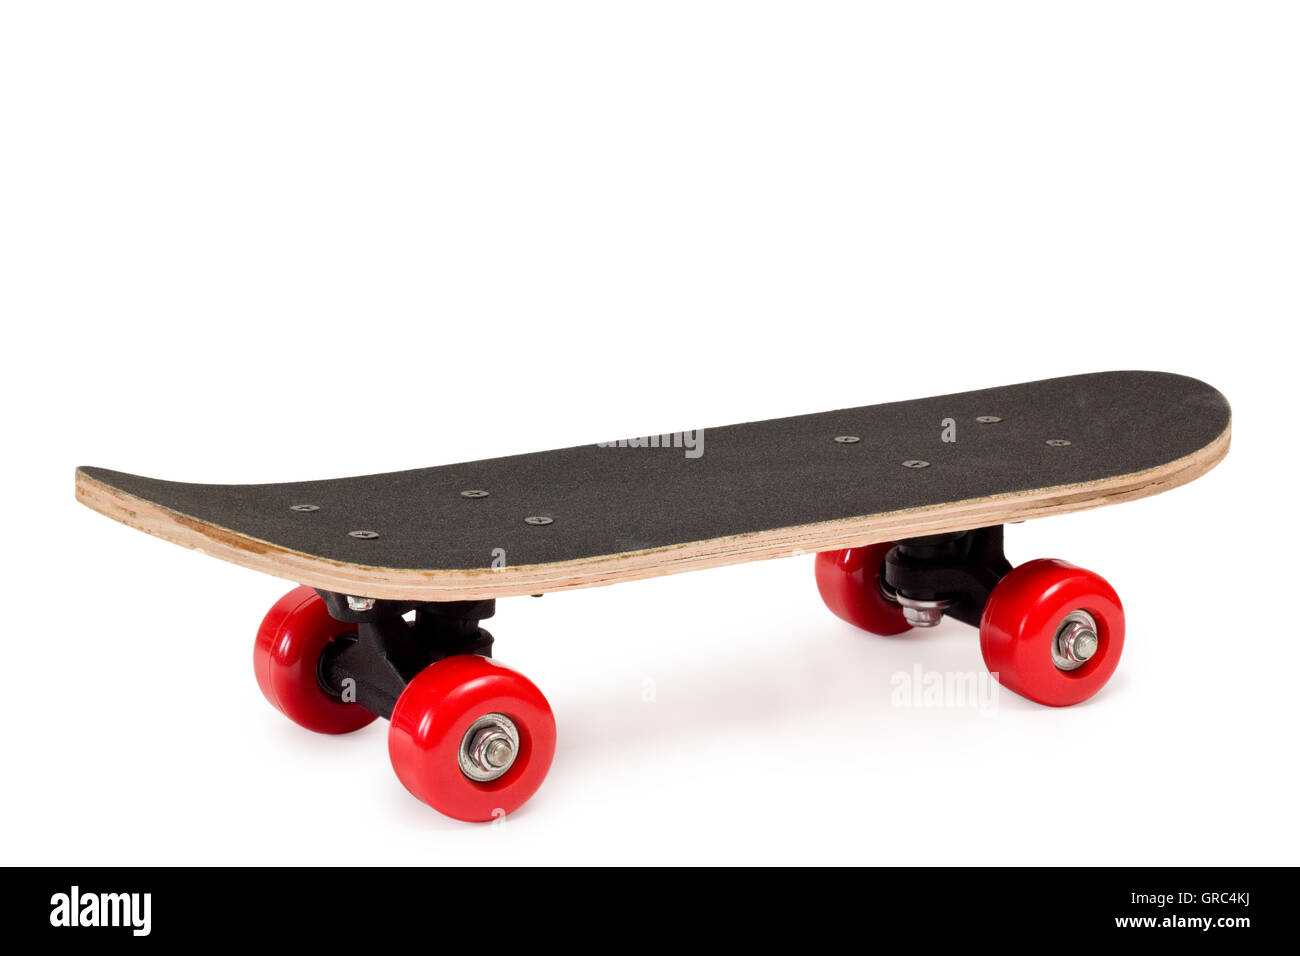 Skateboard With Red Wheels On White Background   Stock Image